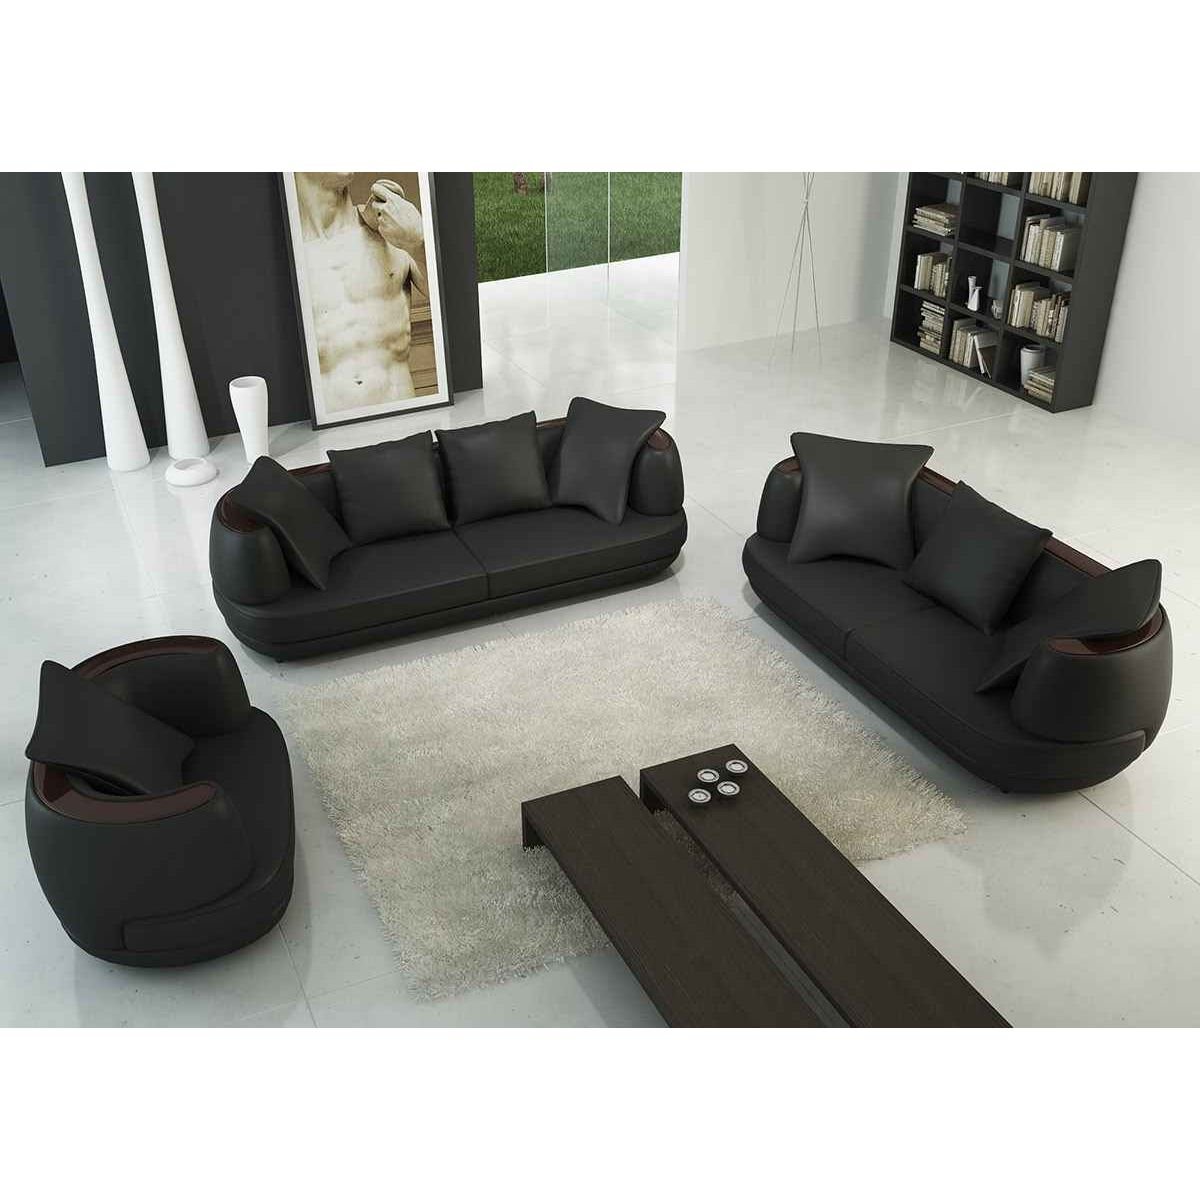 Deco in paris ensemble canape 3 2 1 places noir en cuir - Canape en cuir 2 places ...